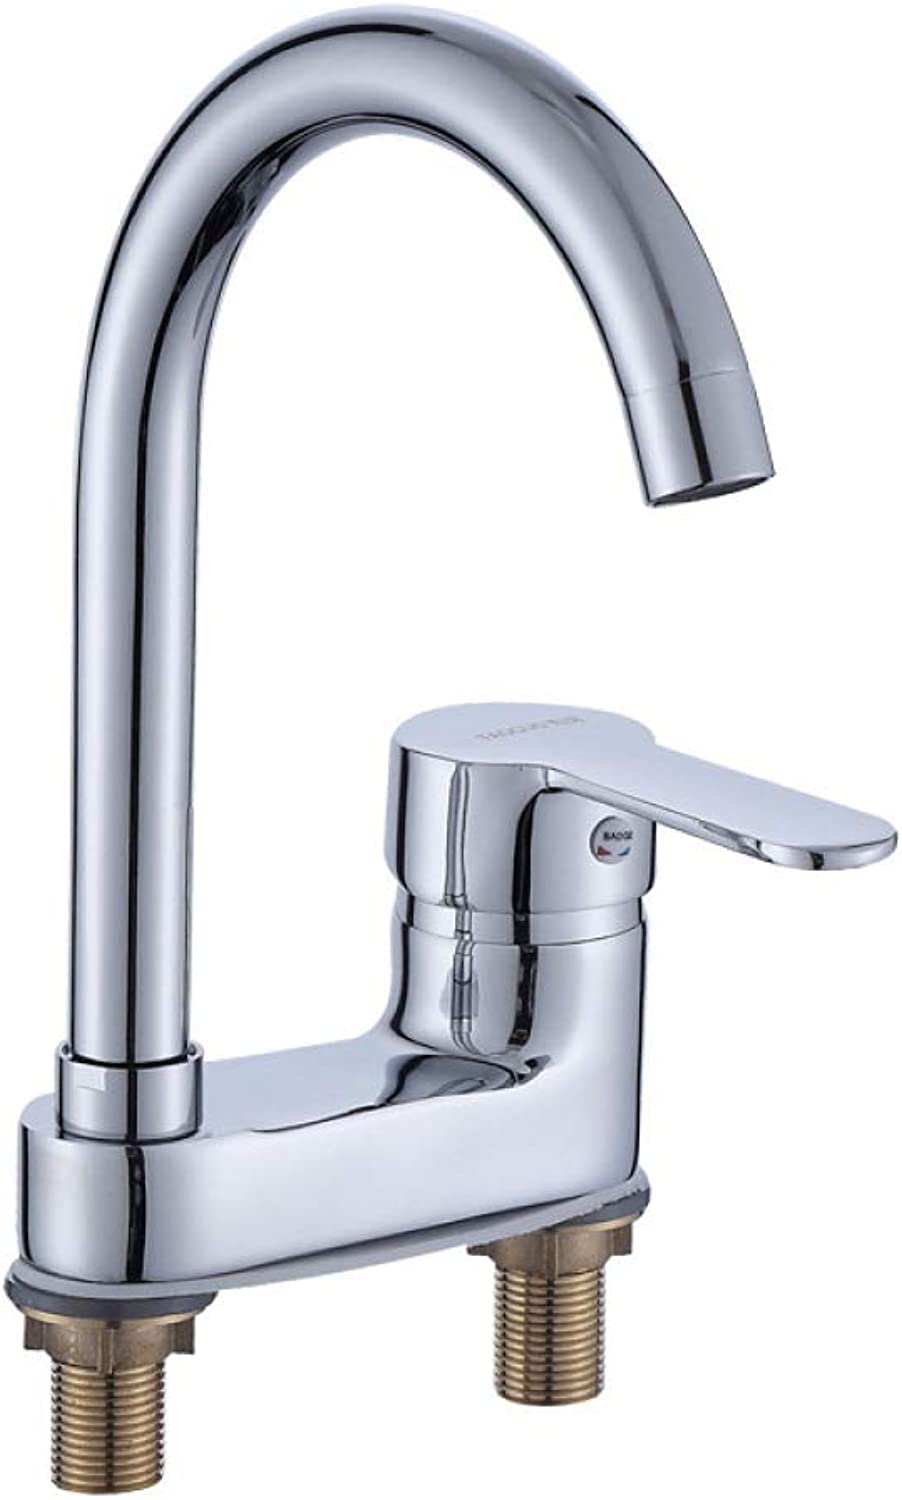 PZXY Faucet Double Hole Basin hot and Cold Faucet with Shower Sprinkler Double Faucet Three-Hole Vintage Faucet